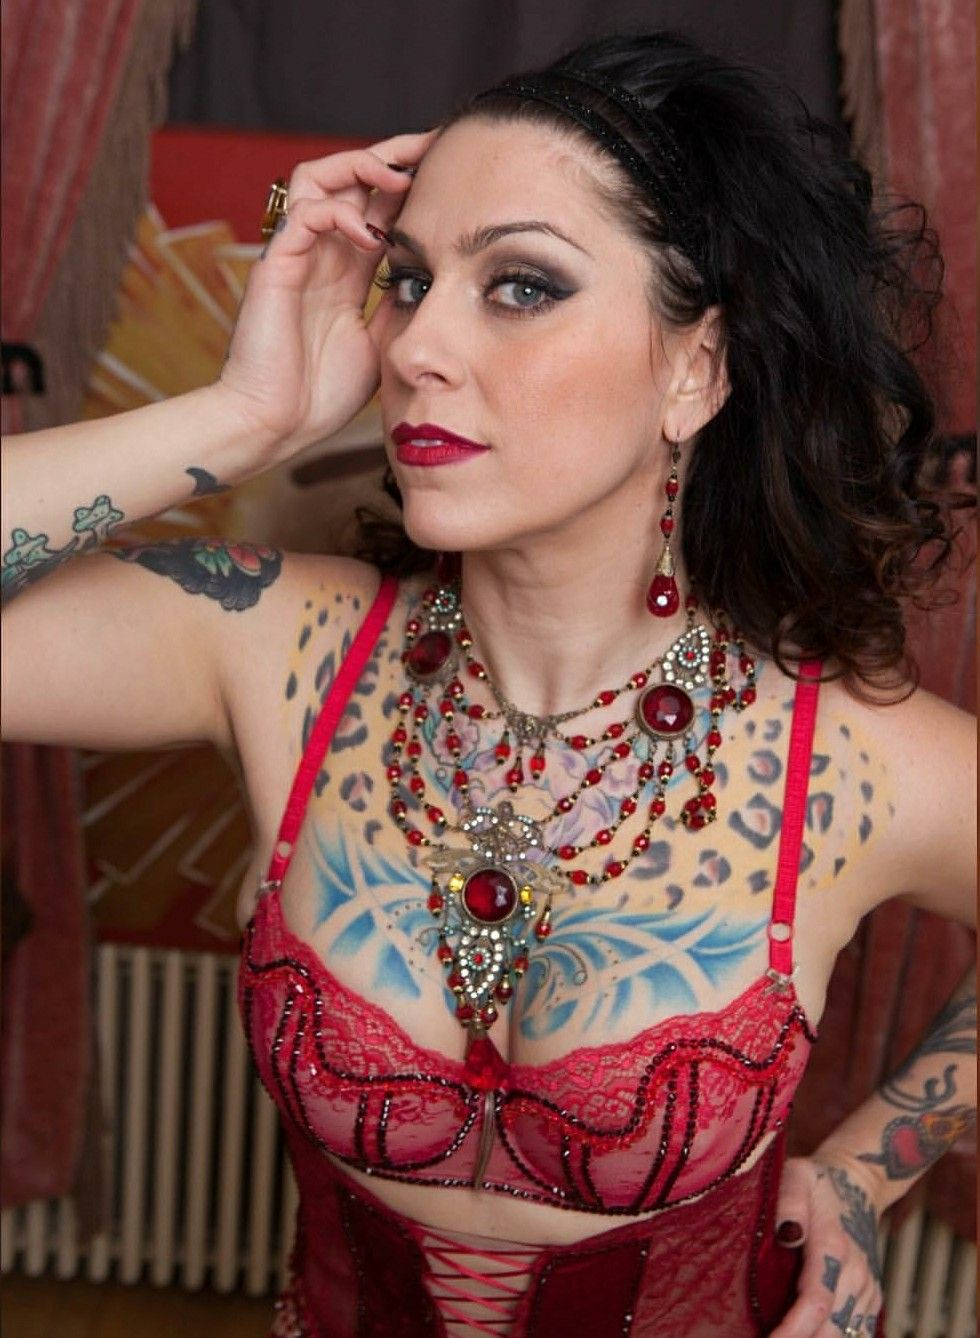 totally nude pics of danielle colby